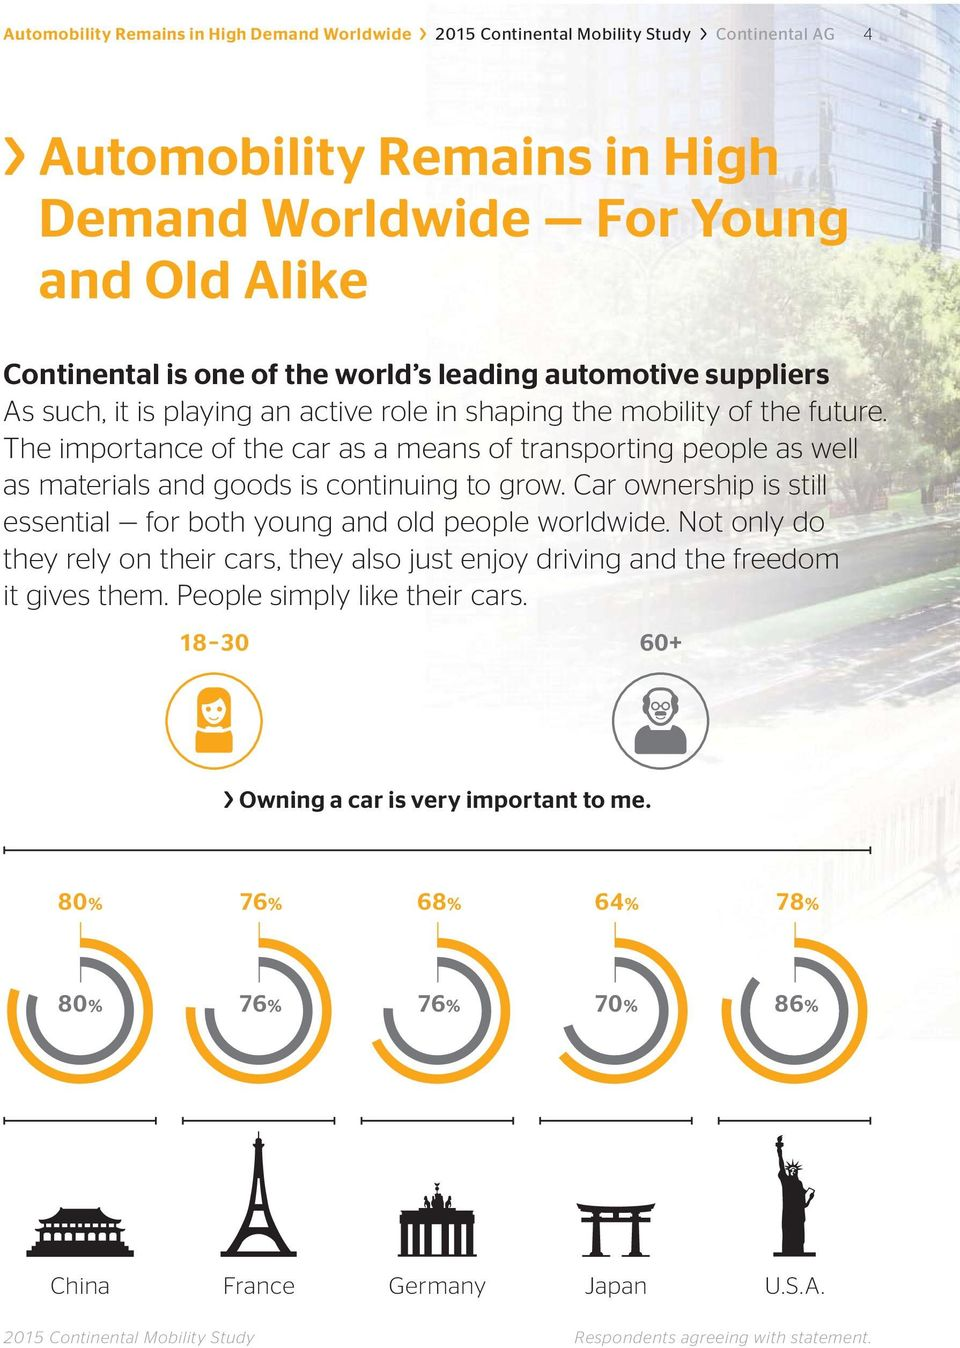 The importance of the car as a means of transporting people as well as materials and goods is continuing to grow. Car ownership is still essential for both young and old people worldwide.